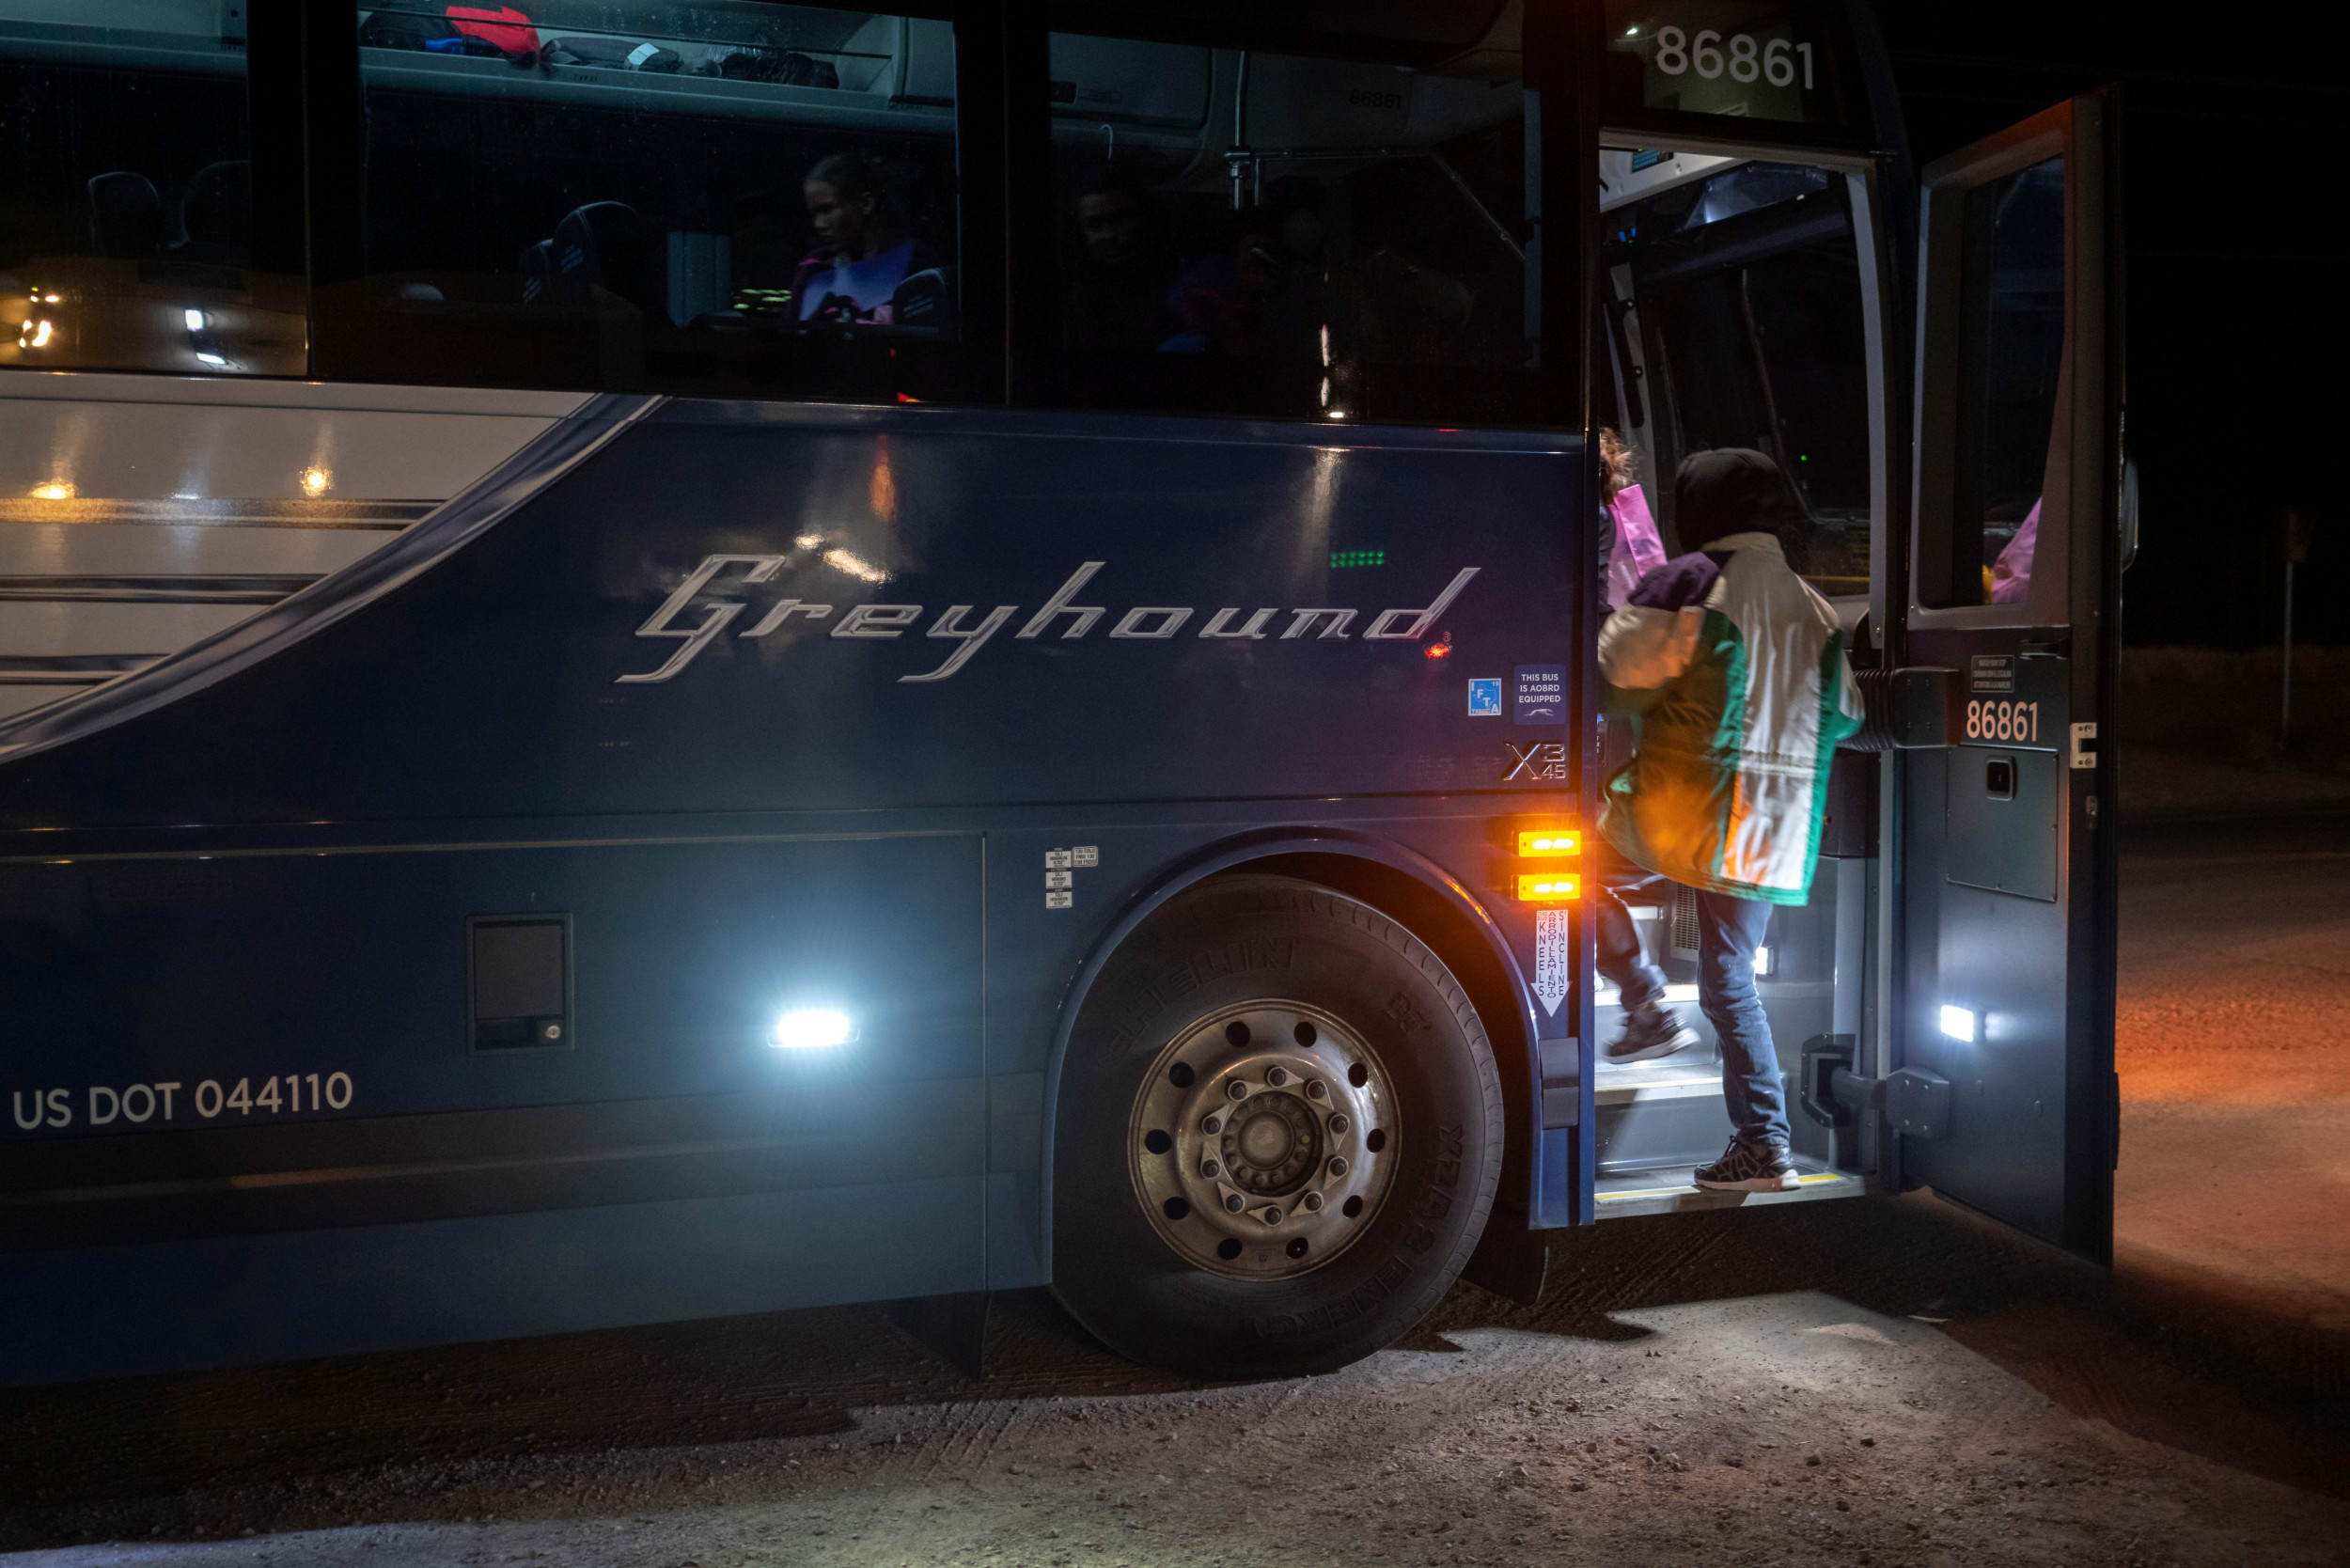 Aclu Calls On Greyhound To Stop Letting Border Patrol